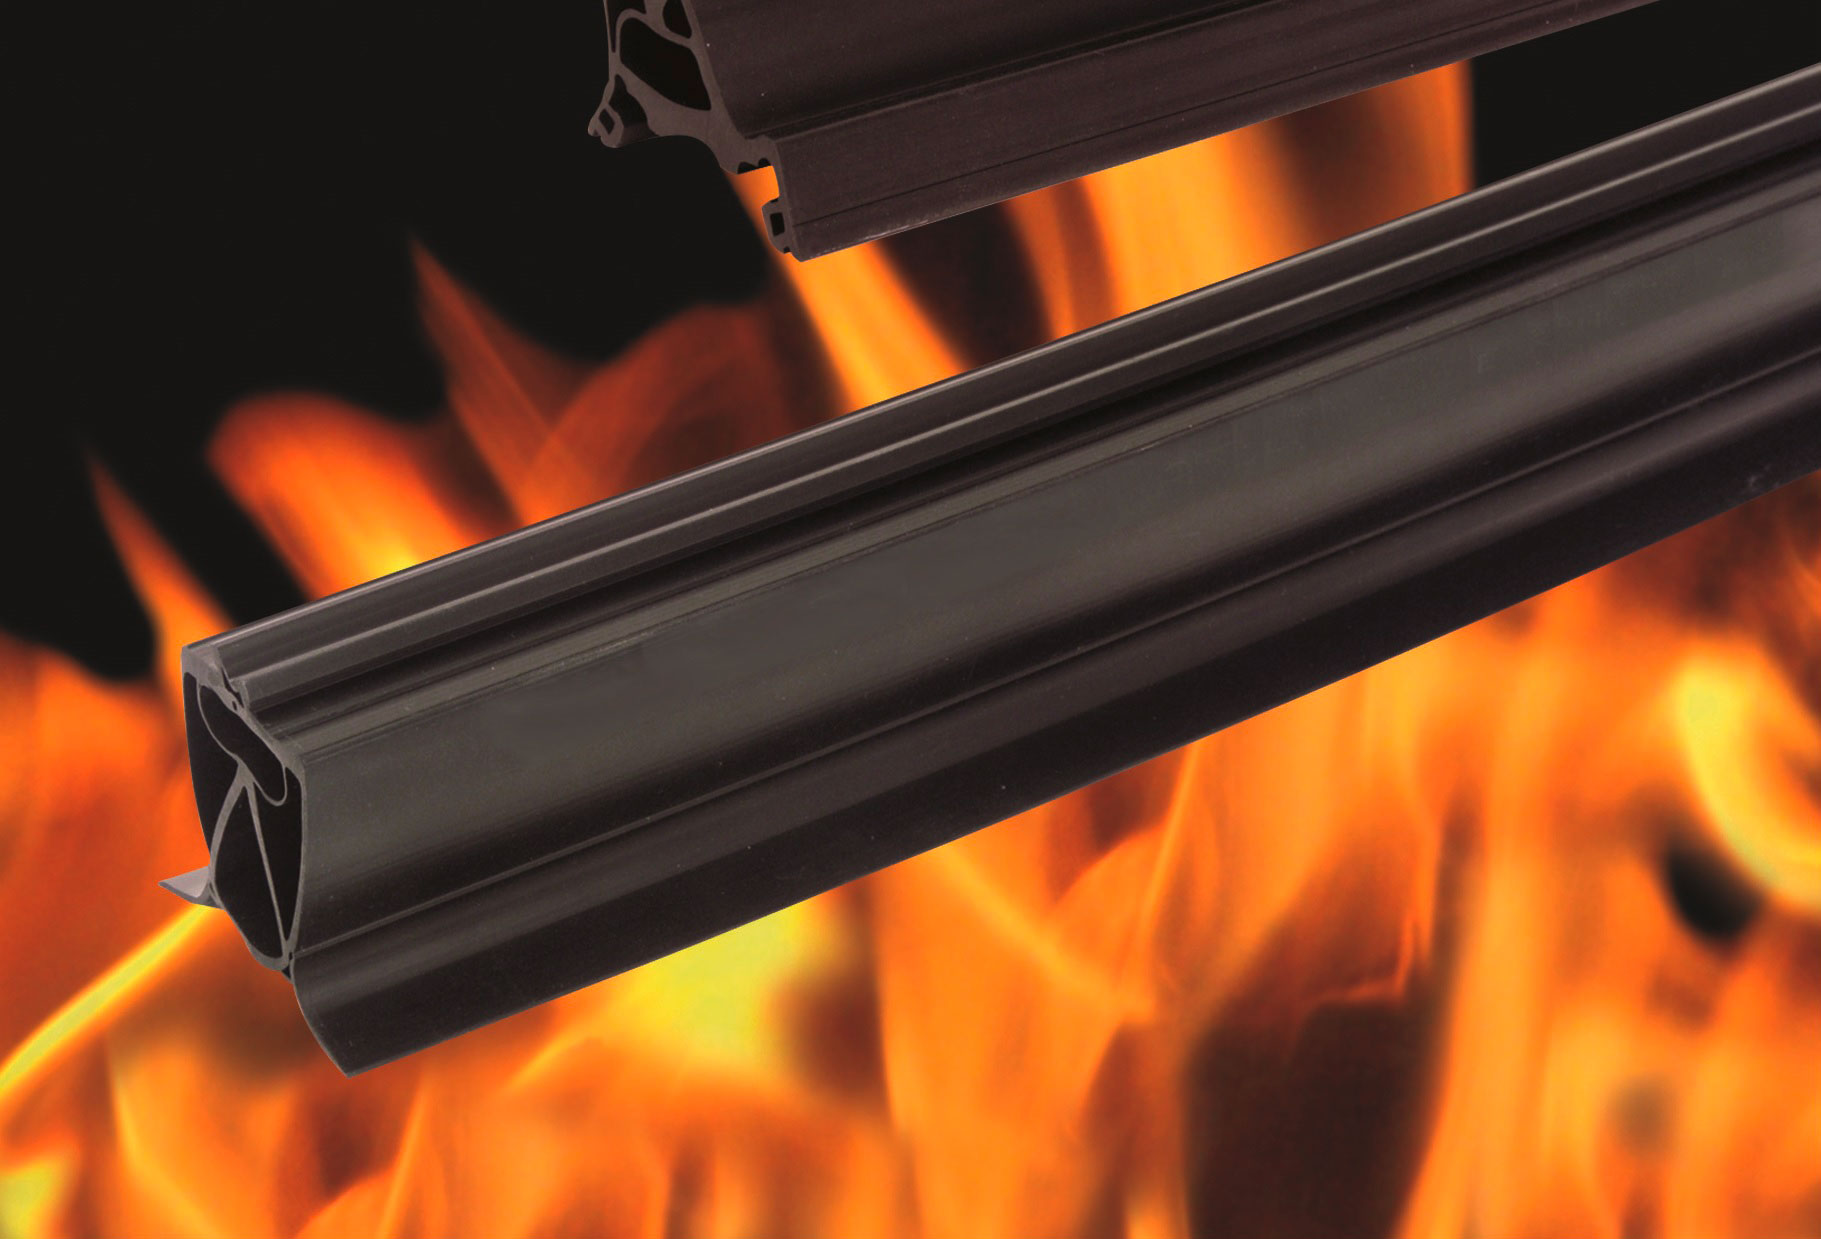 The new fire retardant compounds Sunaflex T9606 and Sunaflex T9613 from Compounds AG are suitable for extrusion applications.